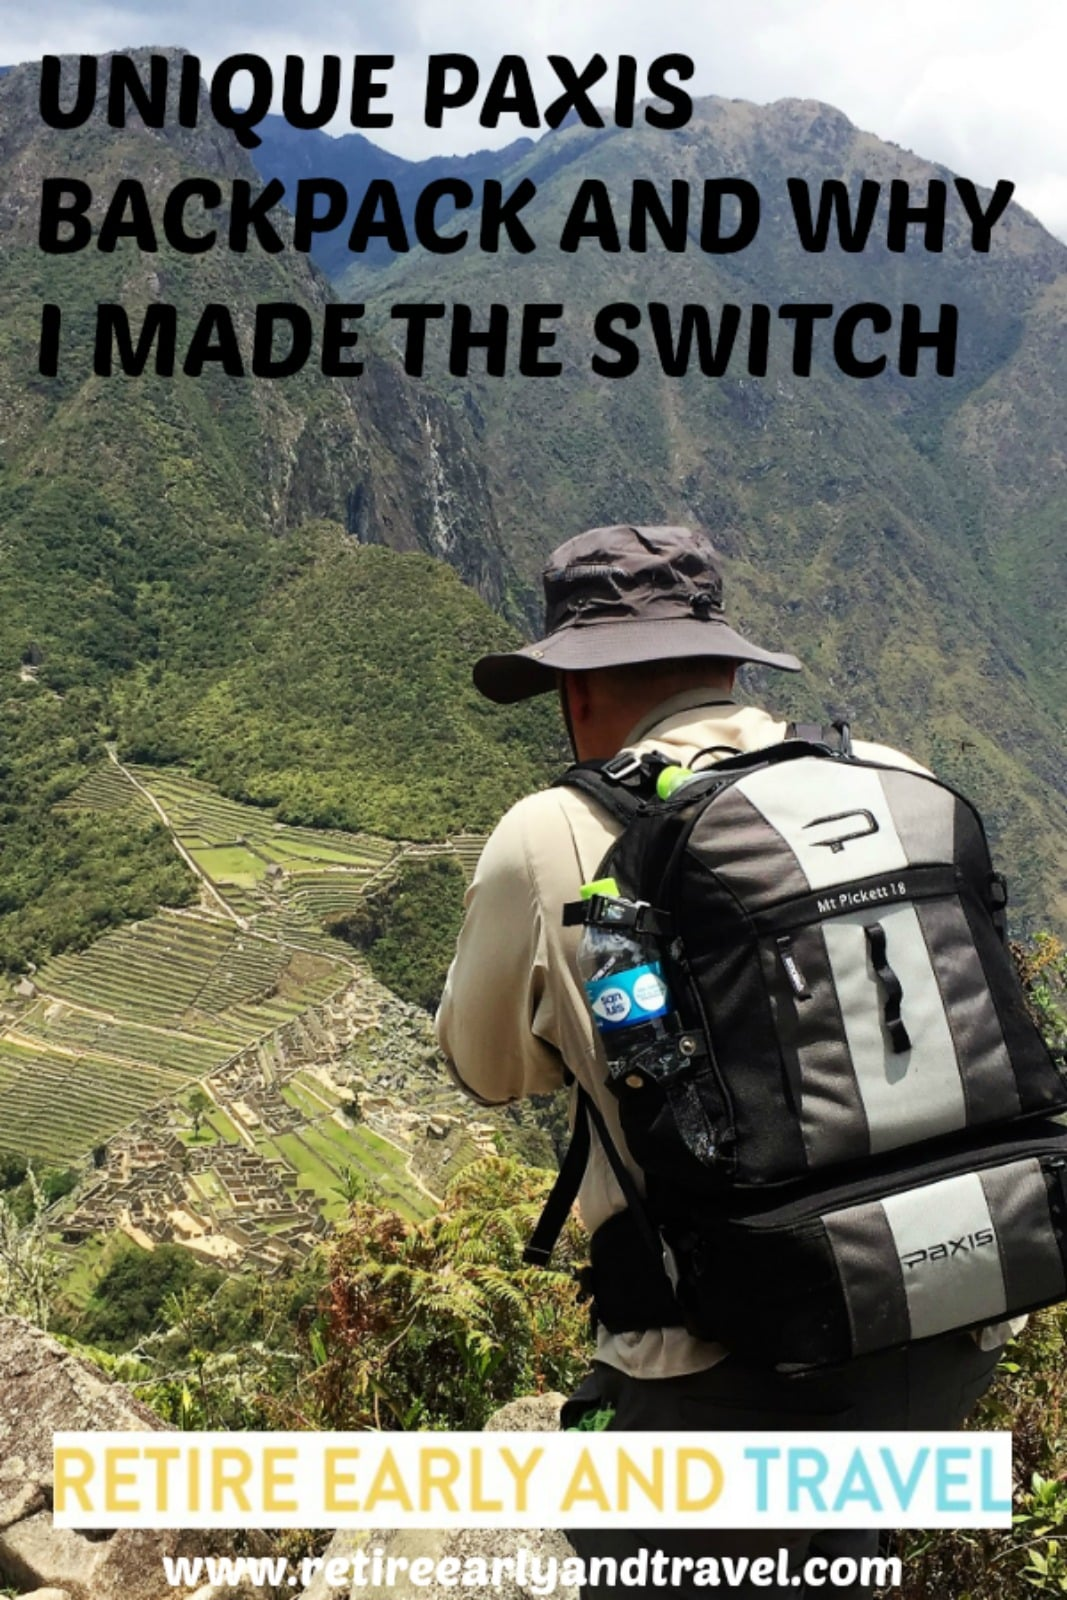 Paxis Backpack, Bottom Line on Why I Made the Switch